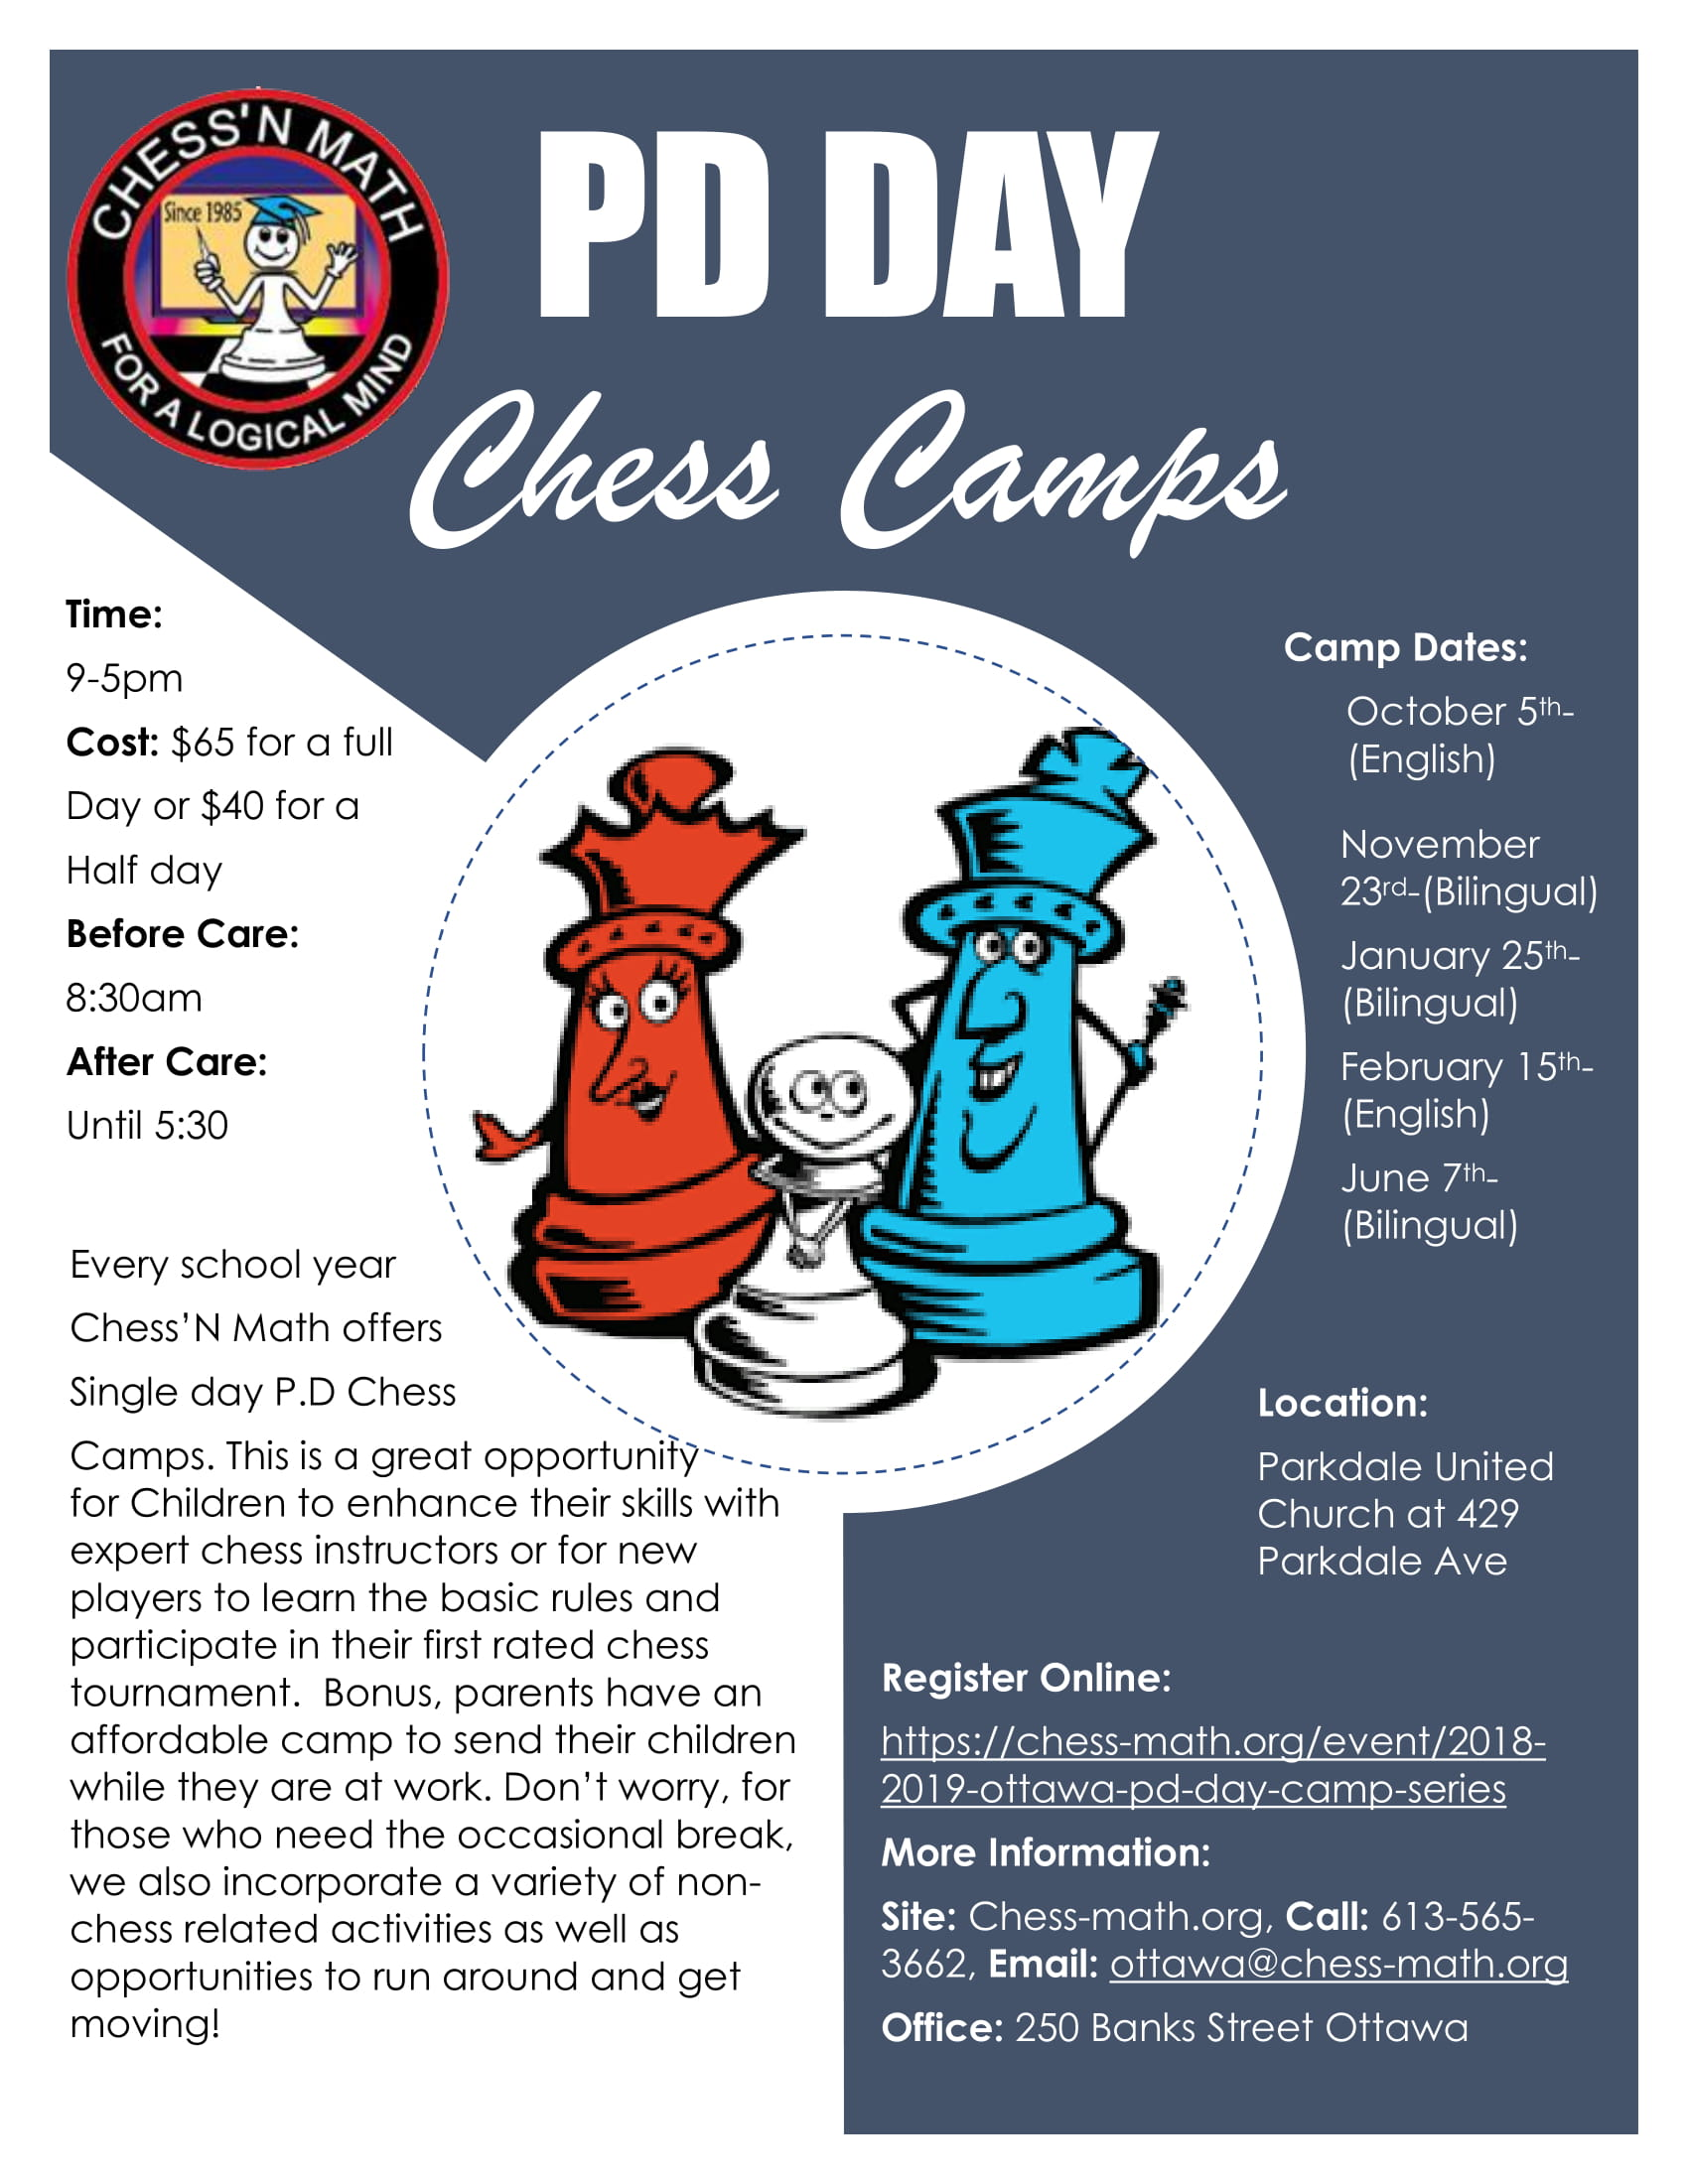 PD Day Camp Schedule 2018-2019 Ottawa